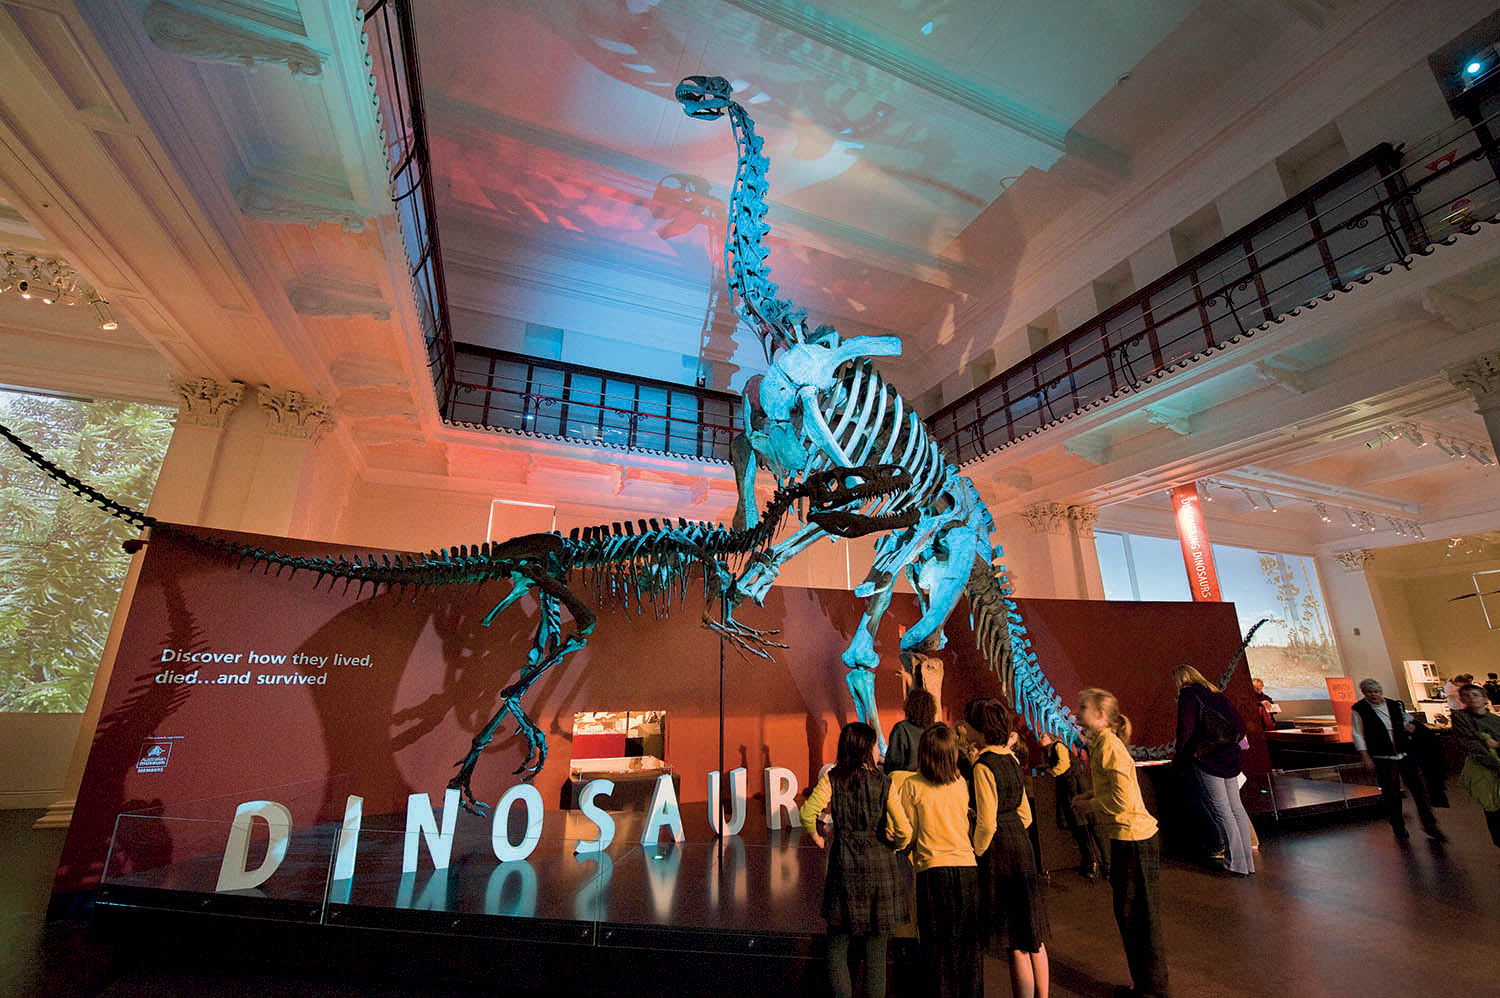 FRD's exhibition design heavily incorporates the heritage fabric of the Australian Museum building, enhancing the visual and interpretive impact of the museum's largest natural history artefacts: the casts of dinosaur skeletons.